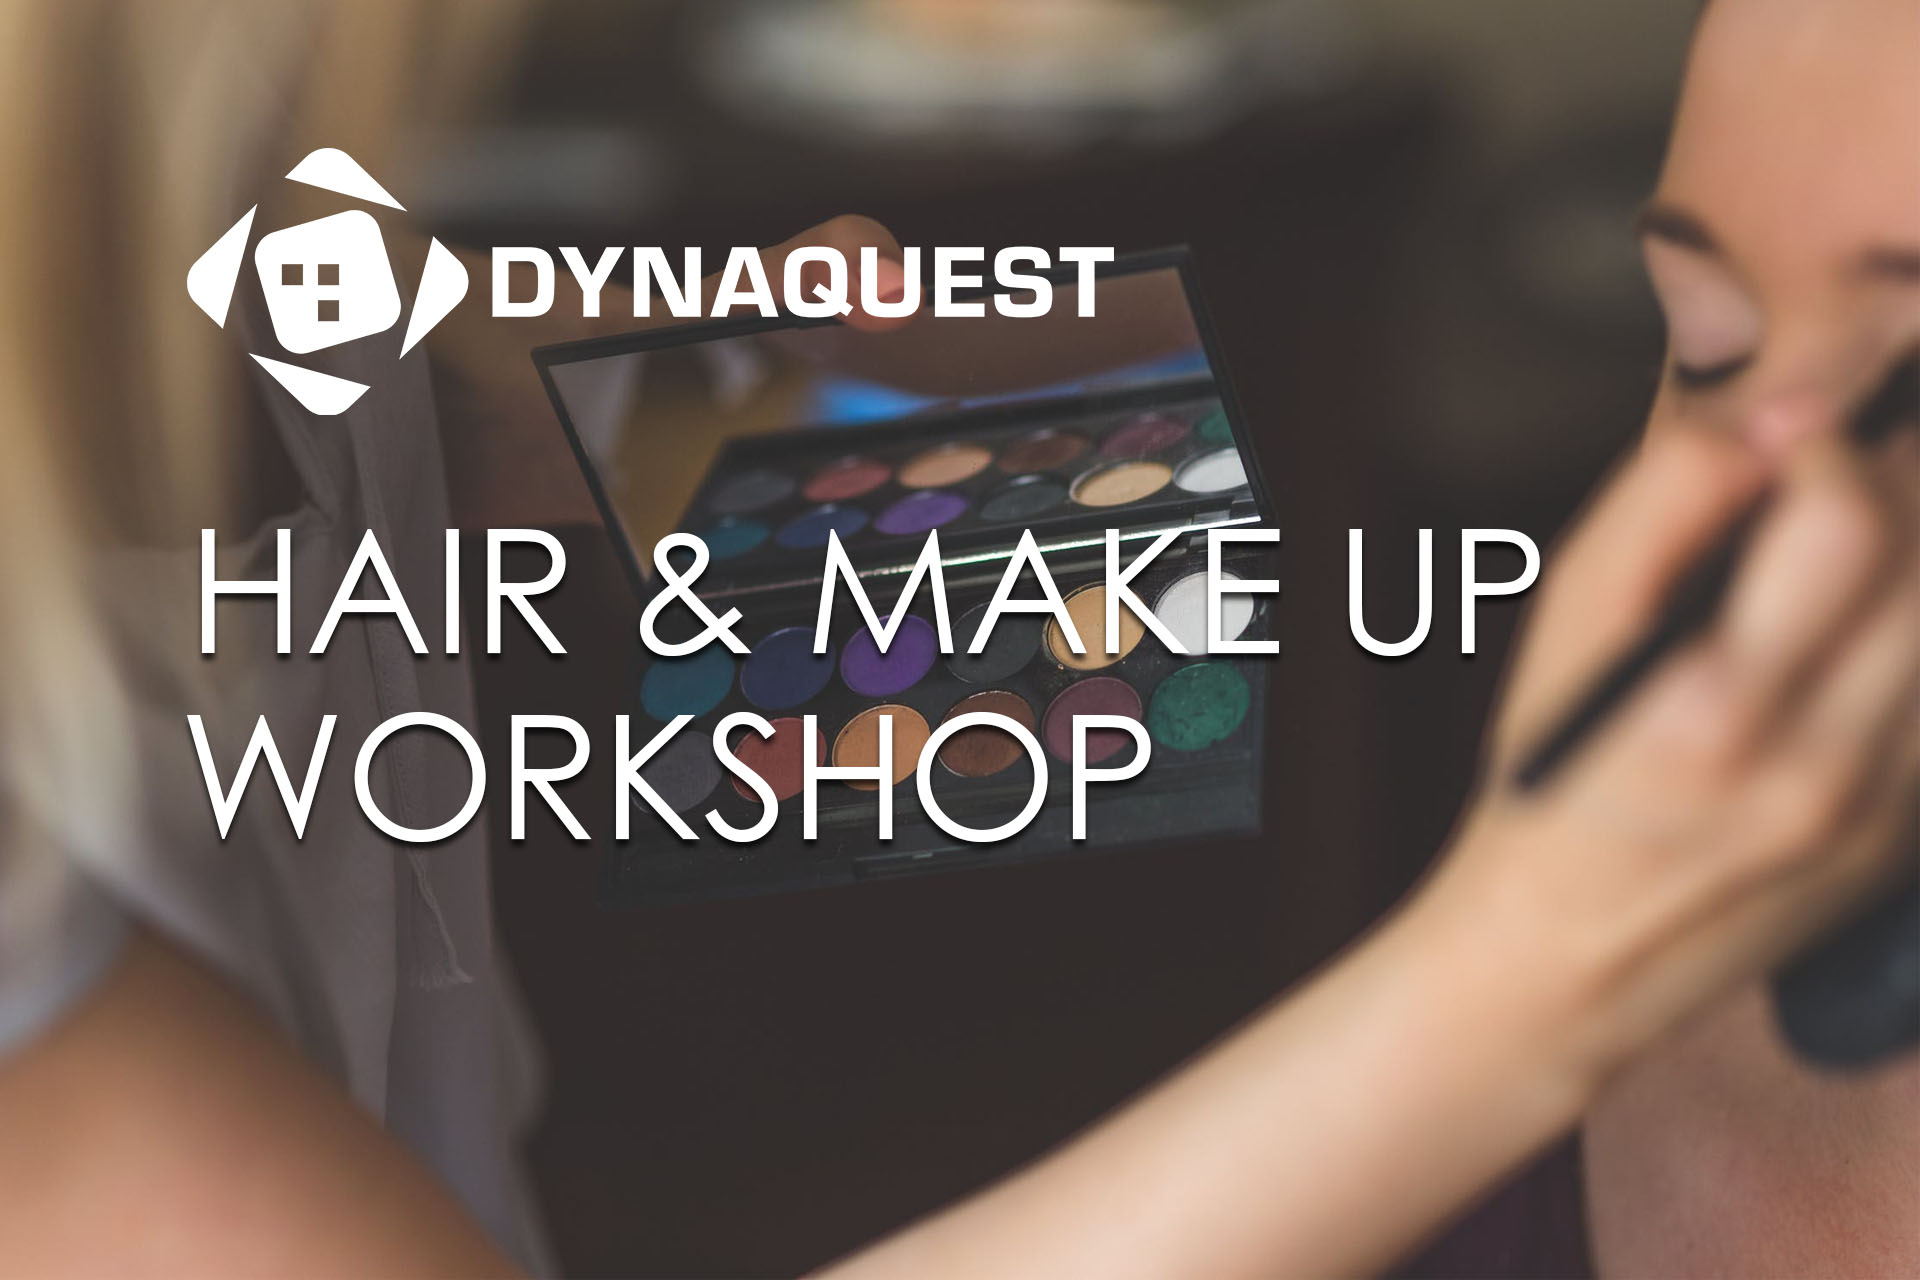 DynaQuest HMUA Workshop